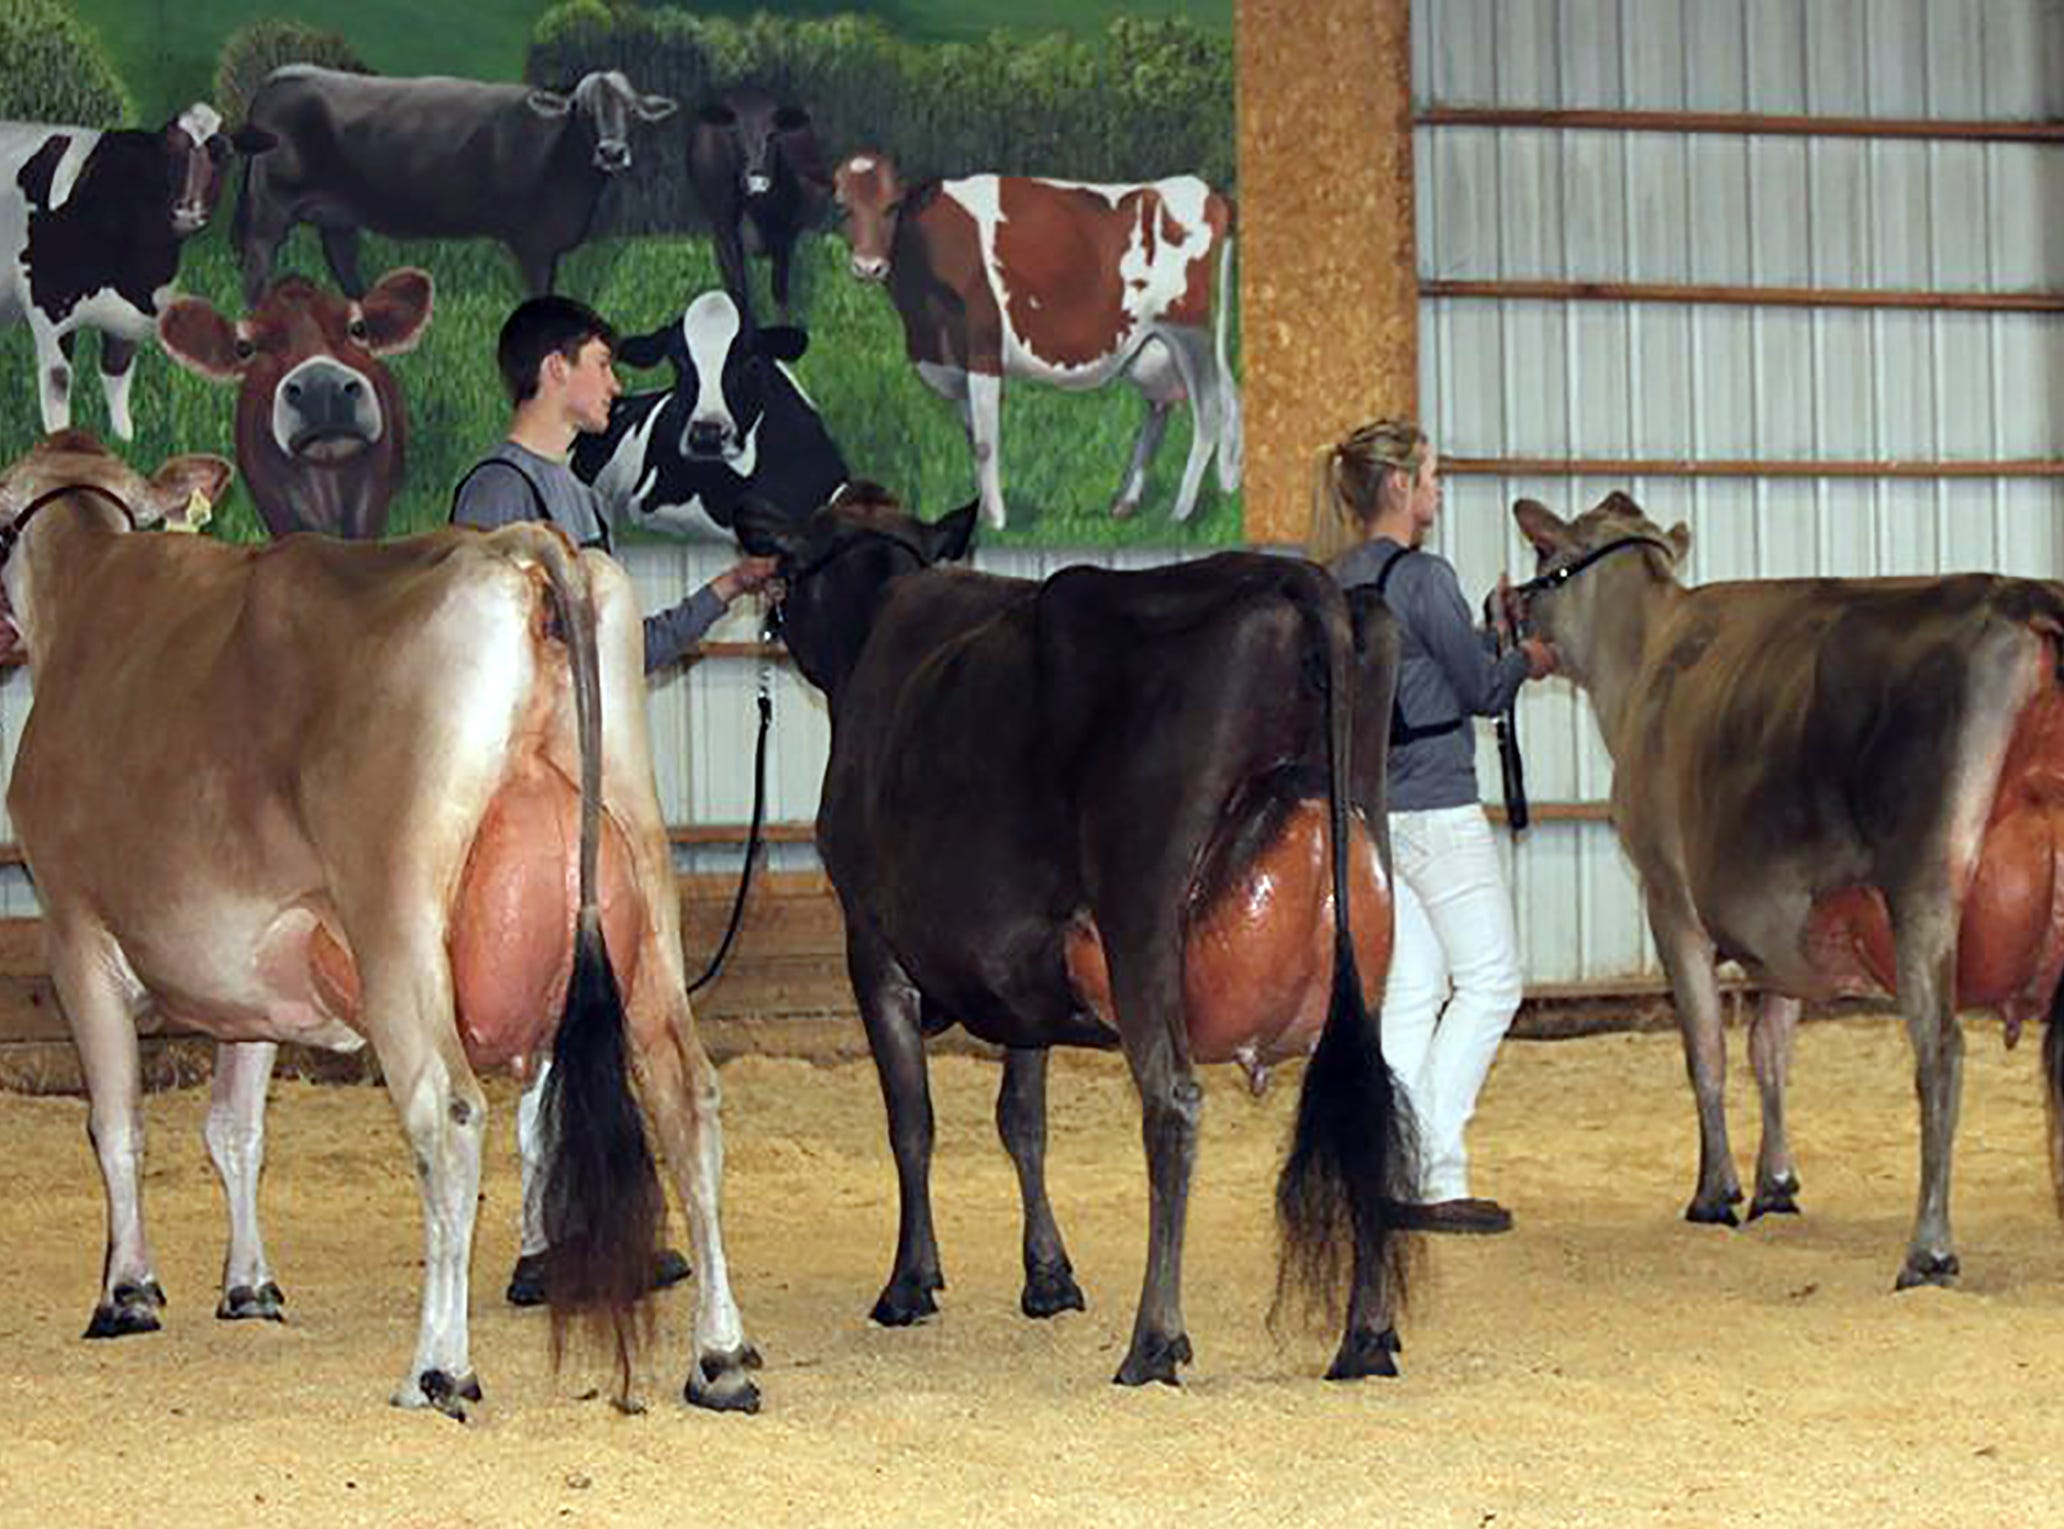 Entries are open for Wisconsin Jersey Spring Spectacular Show